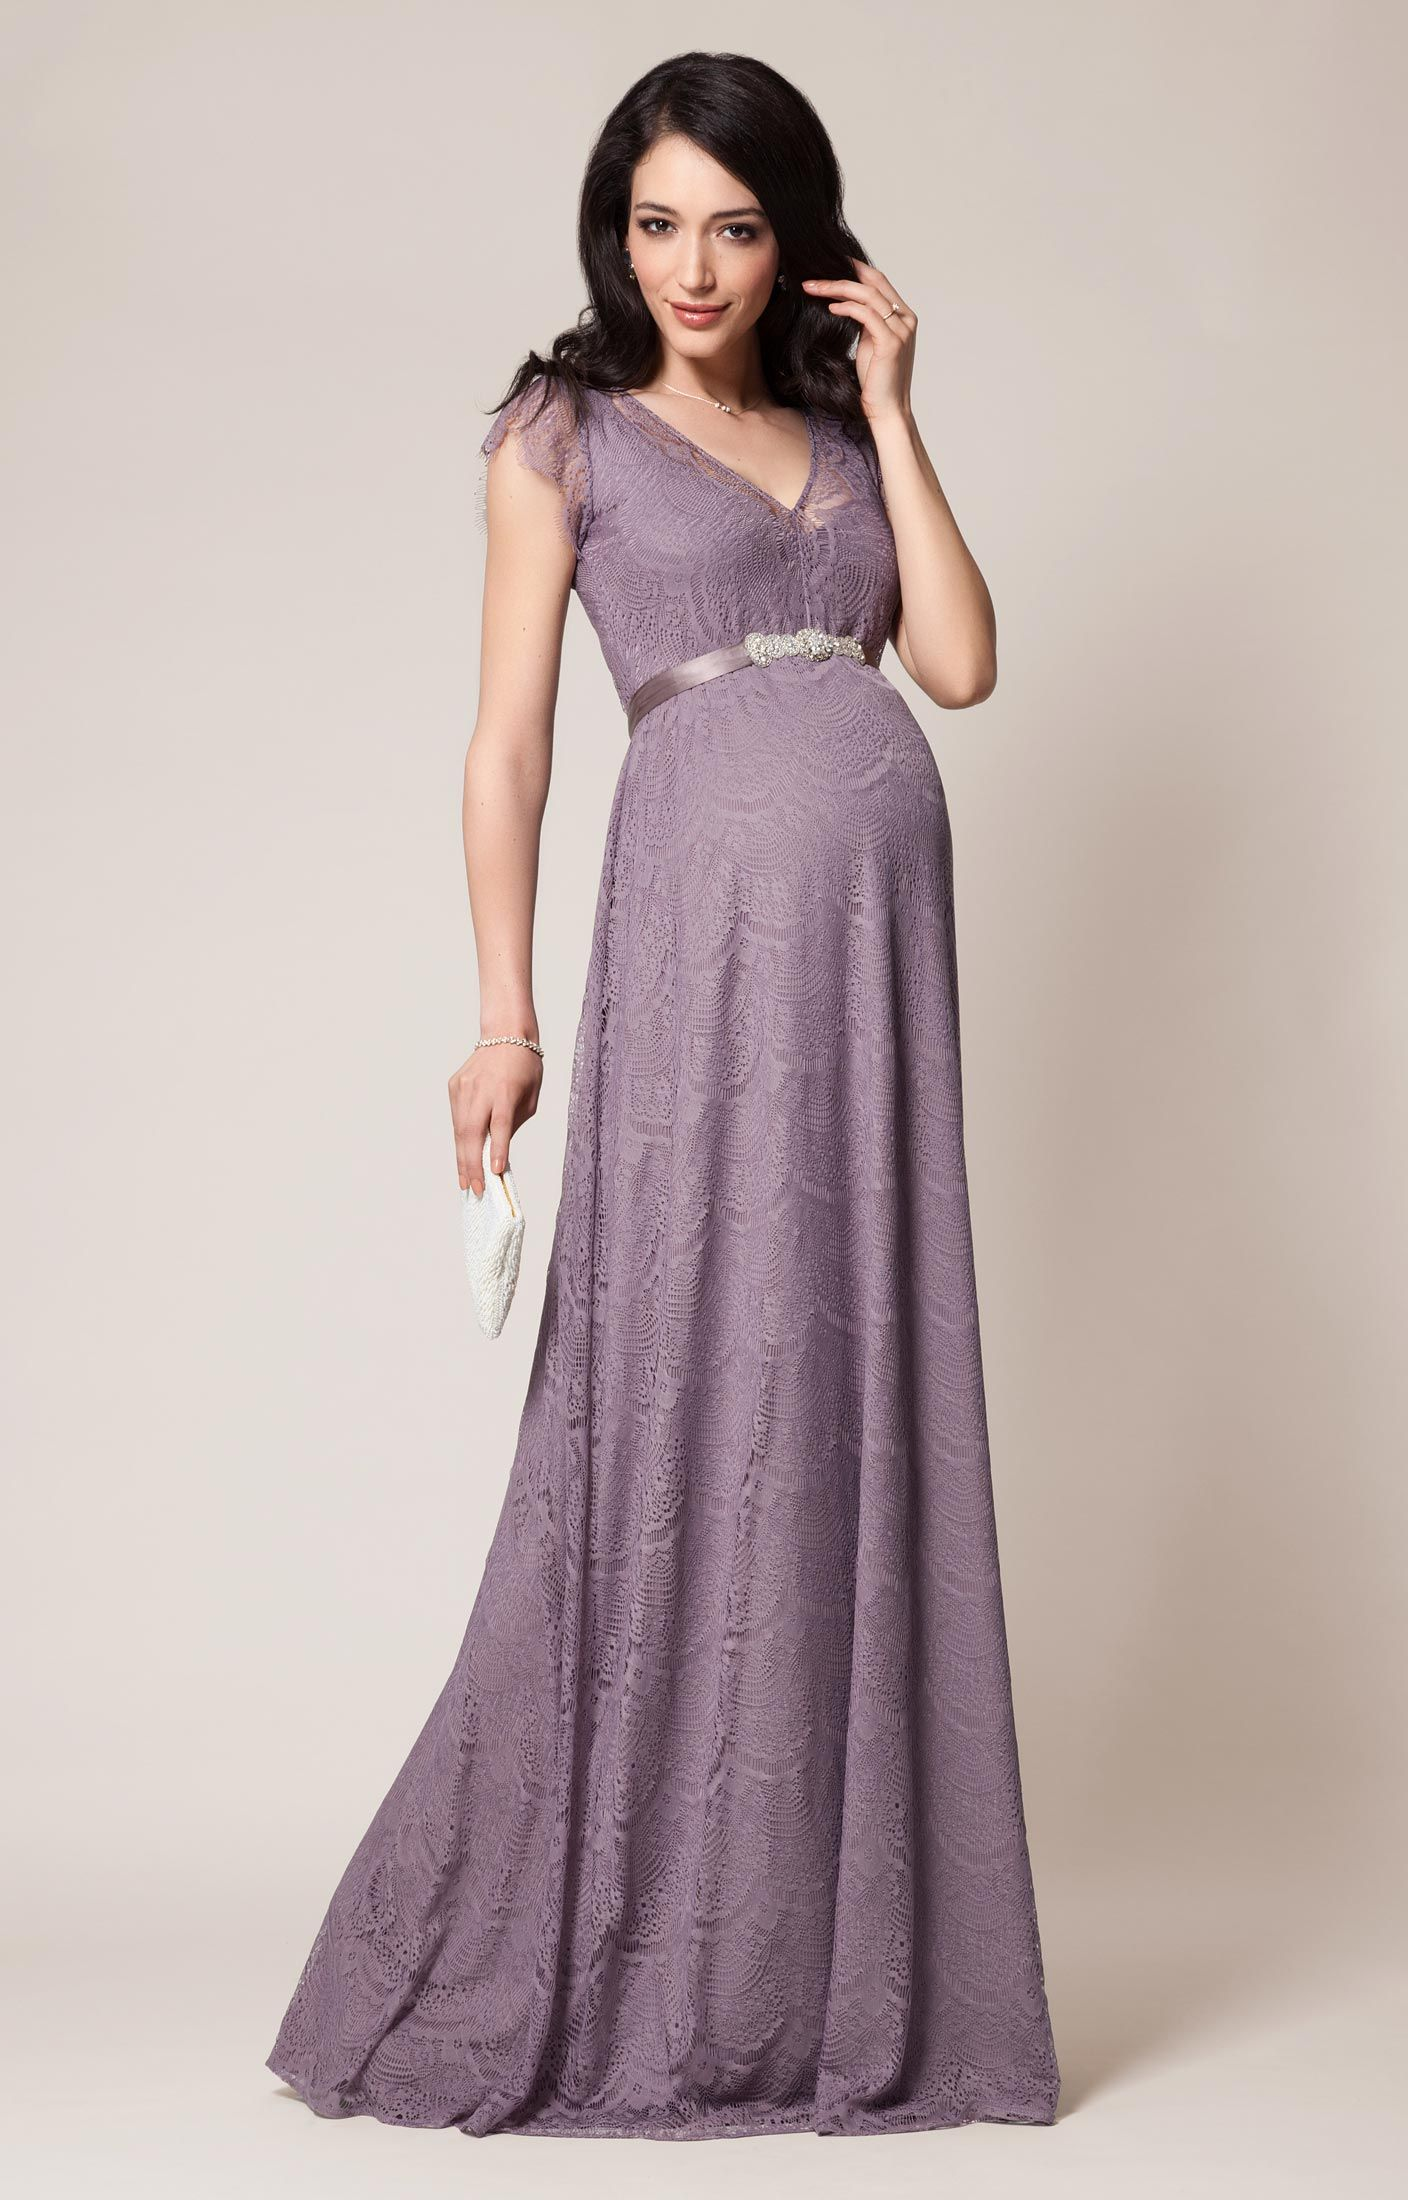 Kristin Maternity Gown Long Wisteria By Tiffany Rose Maternity